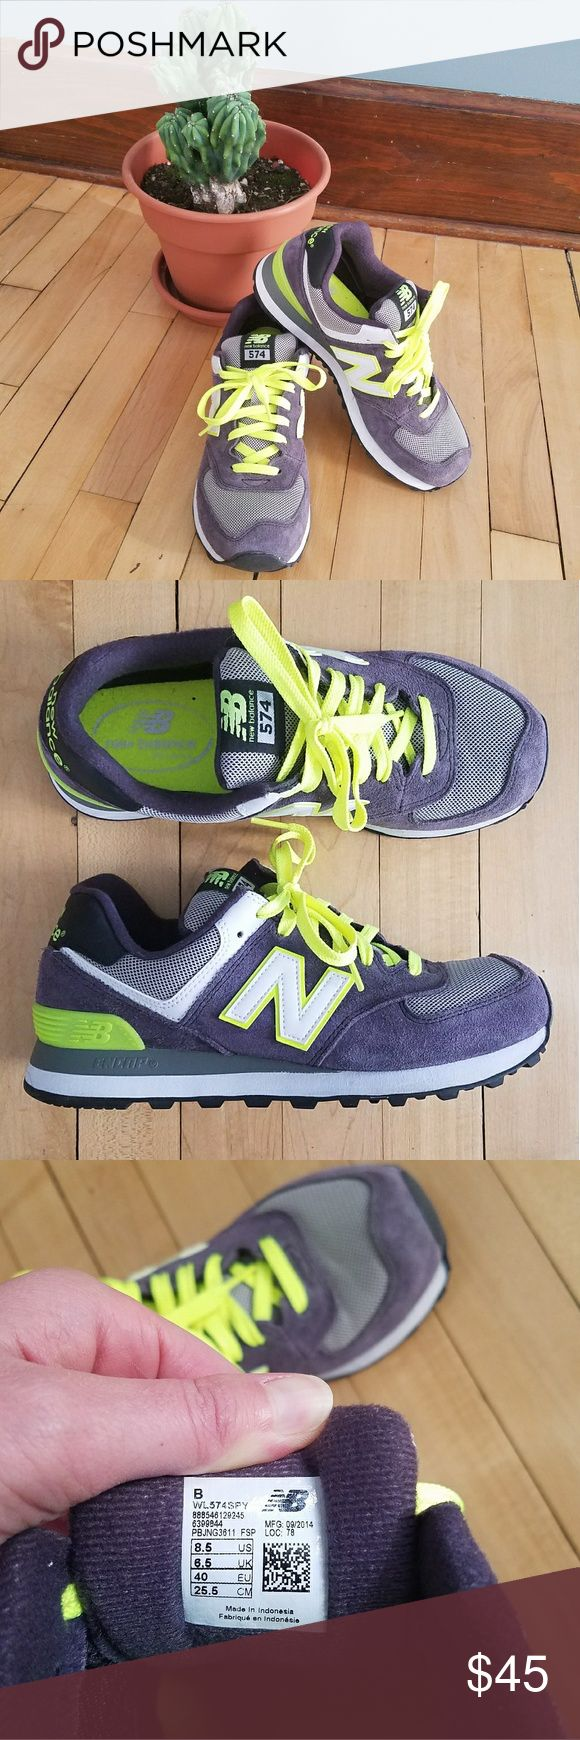 New Balance 574 Width B Grey and Neon Shoes Worn only once casually! Super comfortable, look brand new. New Balance Shoes Athletic Shoes